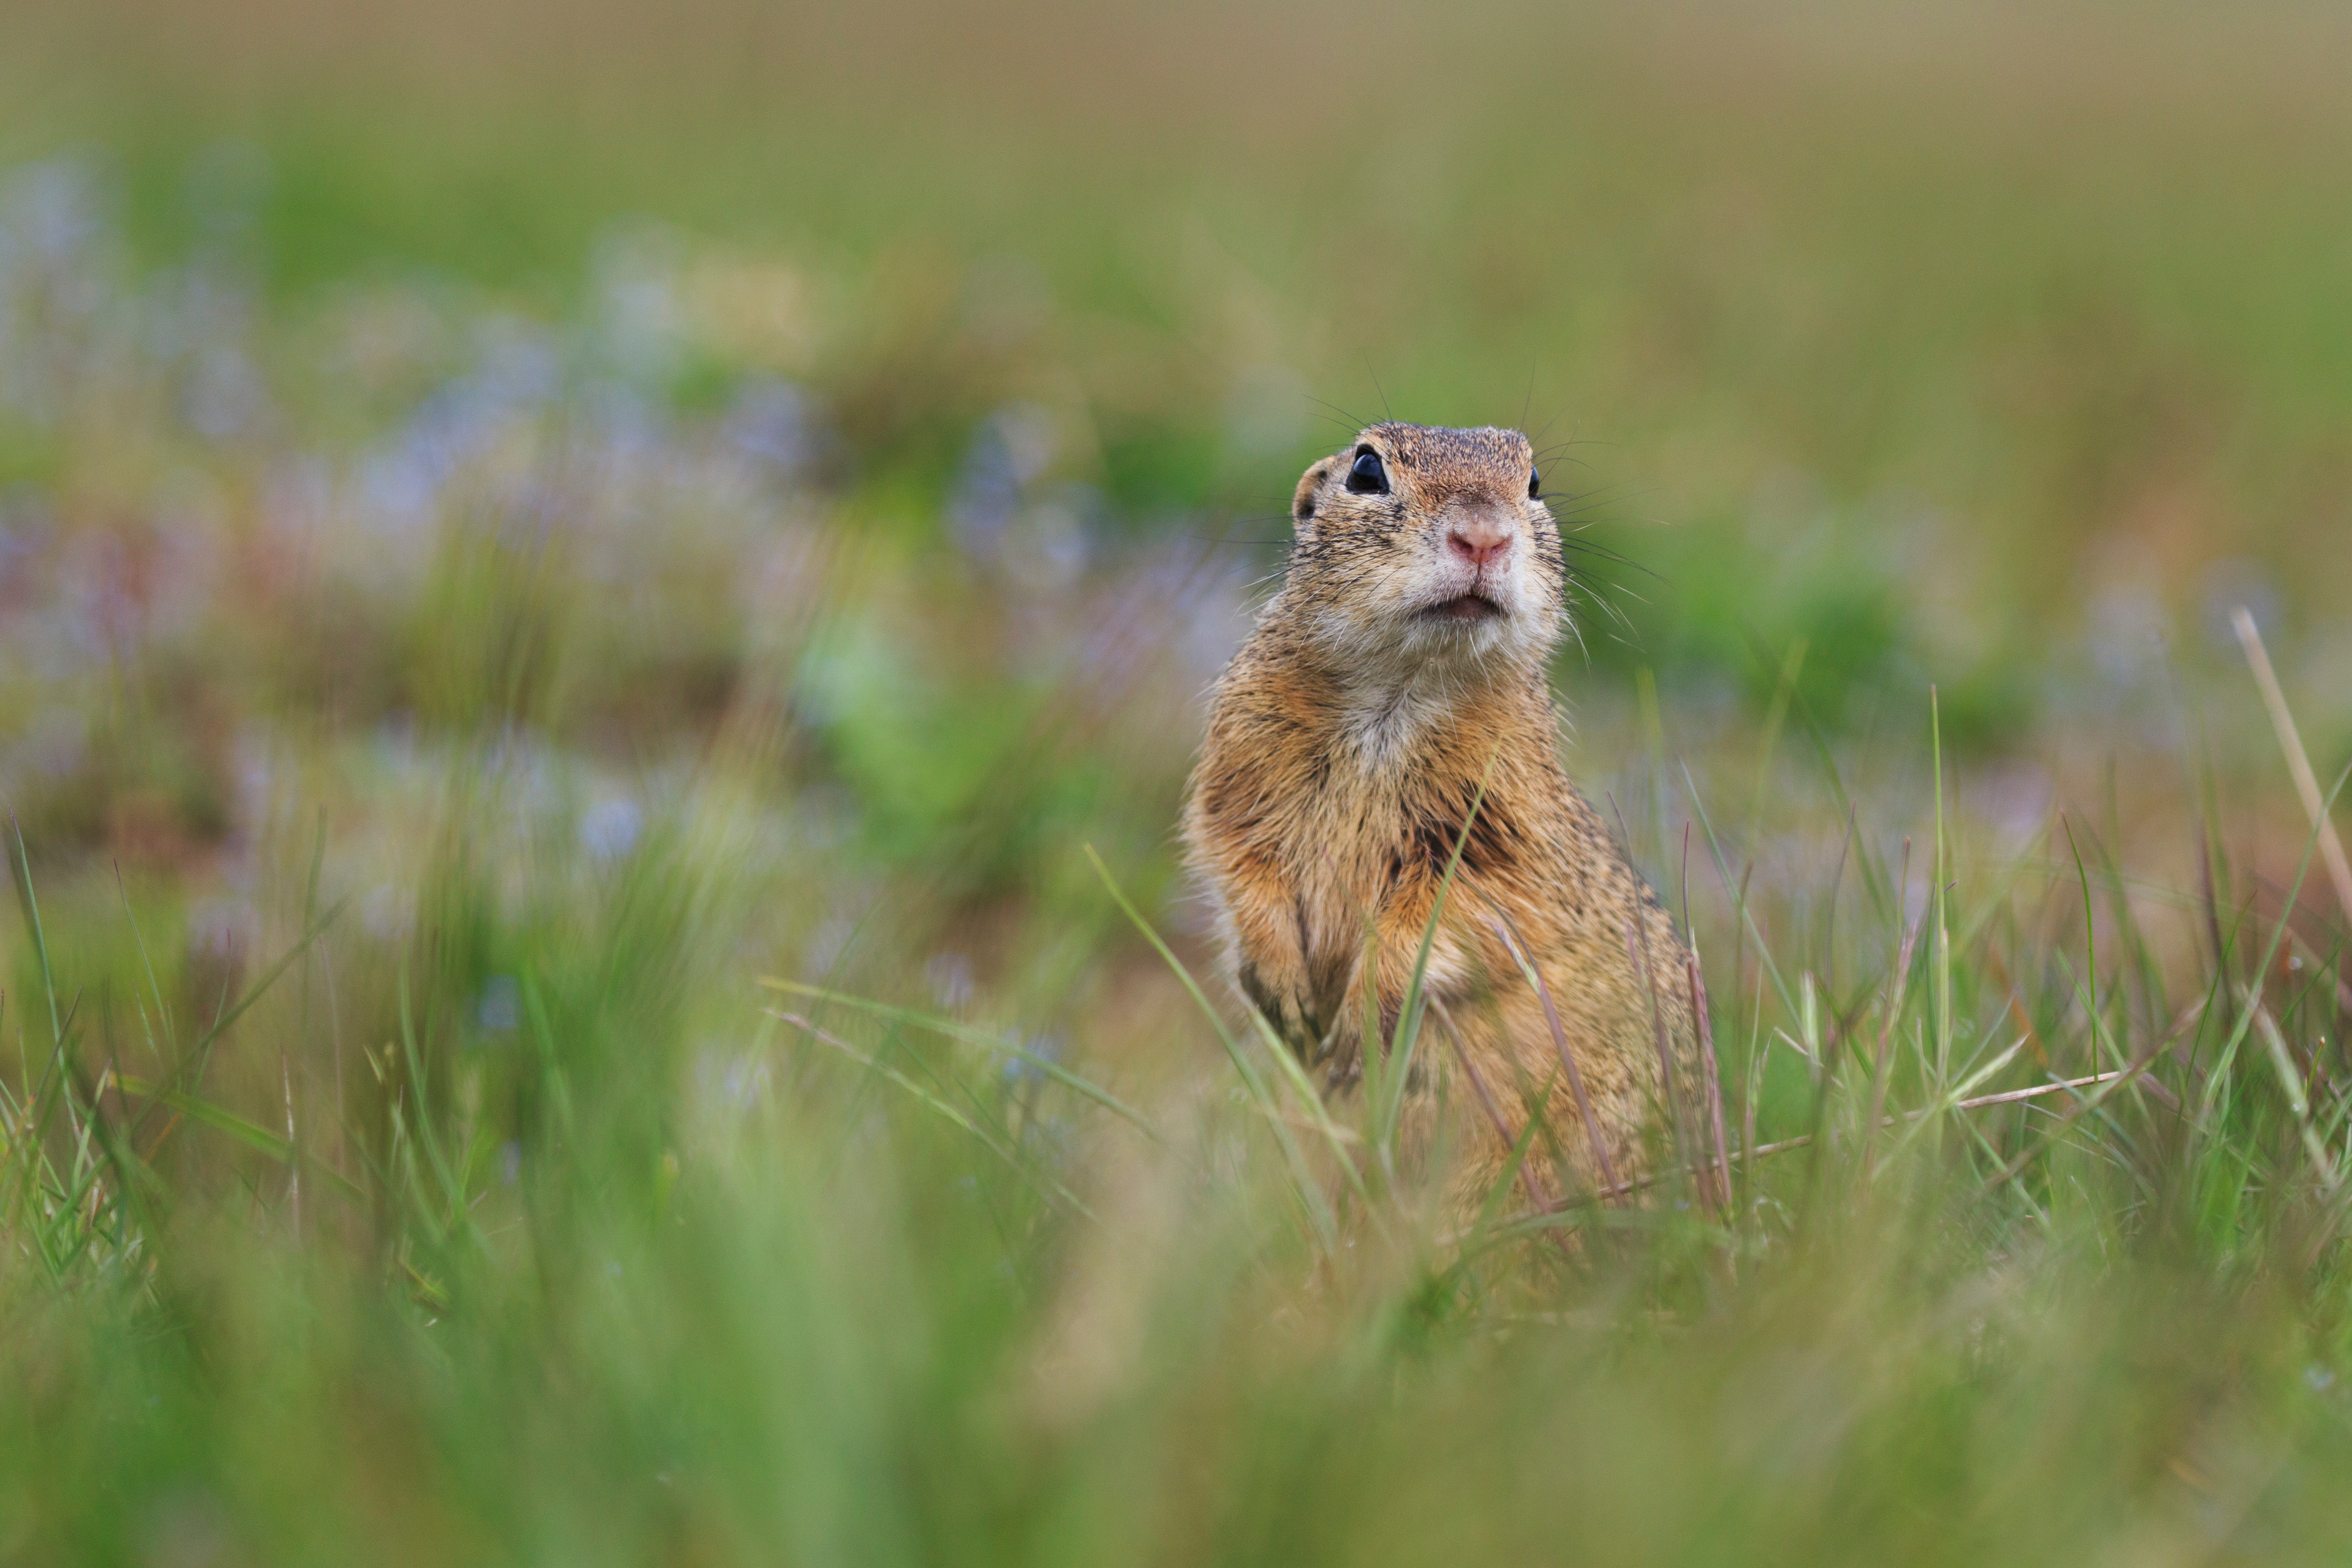 79066 download wallpaper Animals, Prairie Dog, Meadow Dog, Animal, Grass, Blur, Smooth, Wildlife screensavers and pictures for free